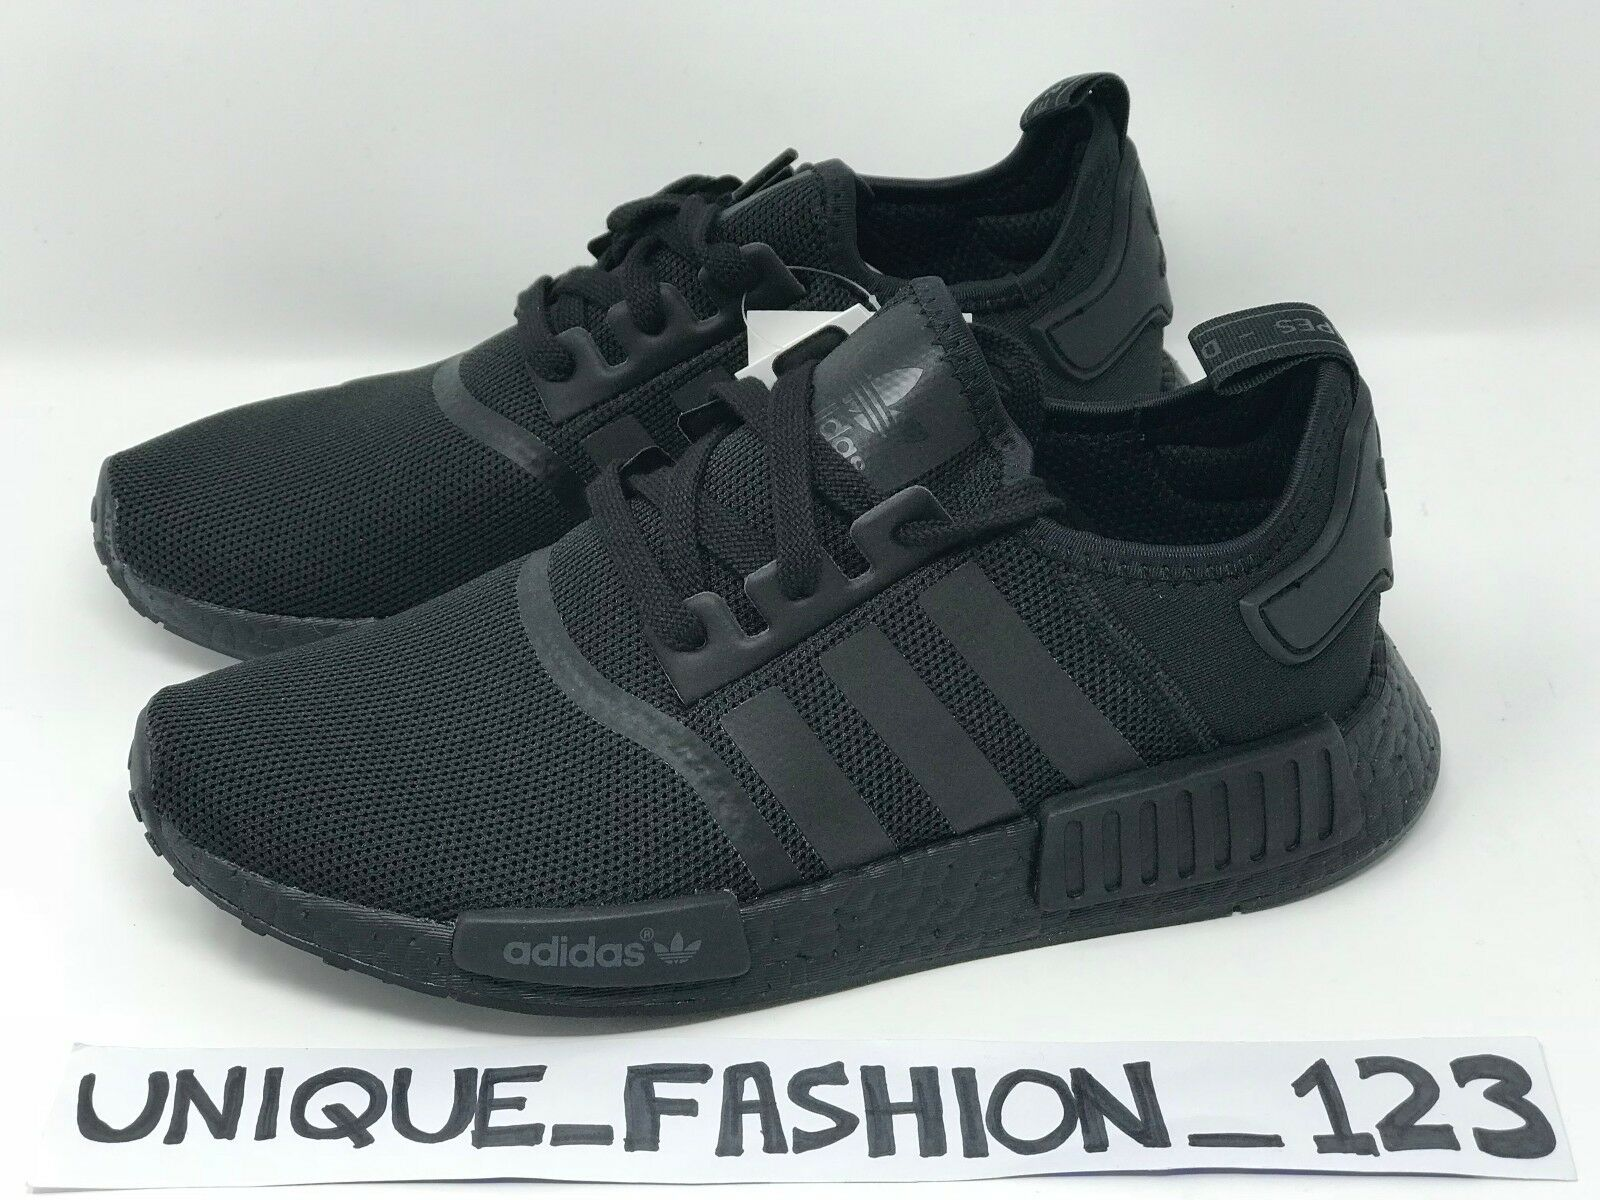 ADIDAS NMD TRIPLE Noir MESH R1 OUT6 7 8 9 10 11 S31508 2018 CORE OG PITCH